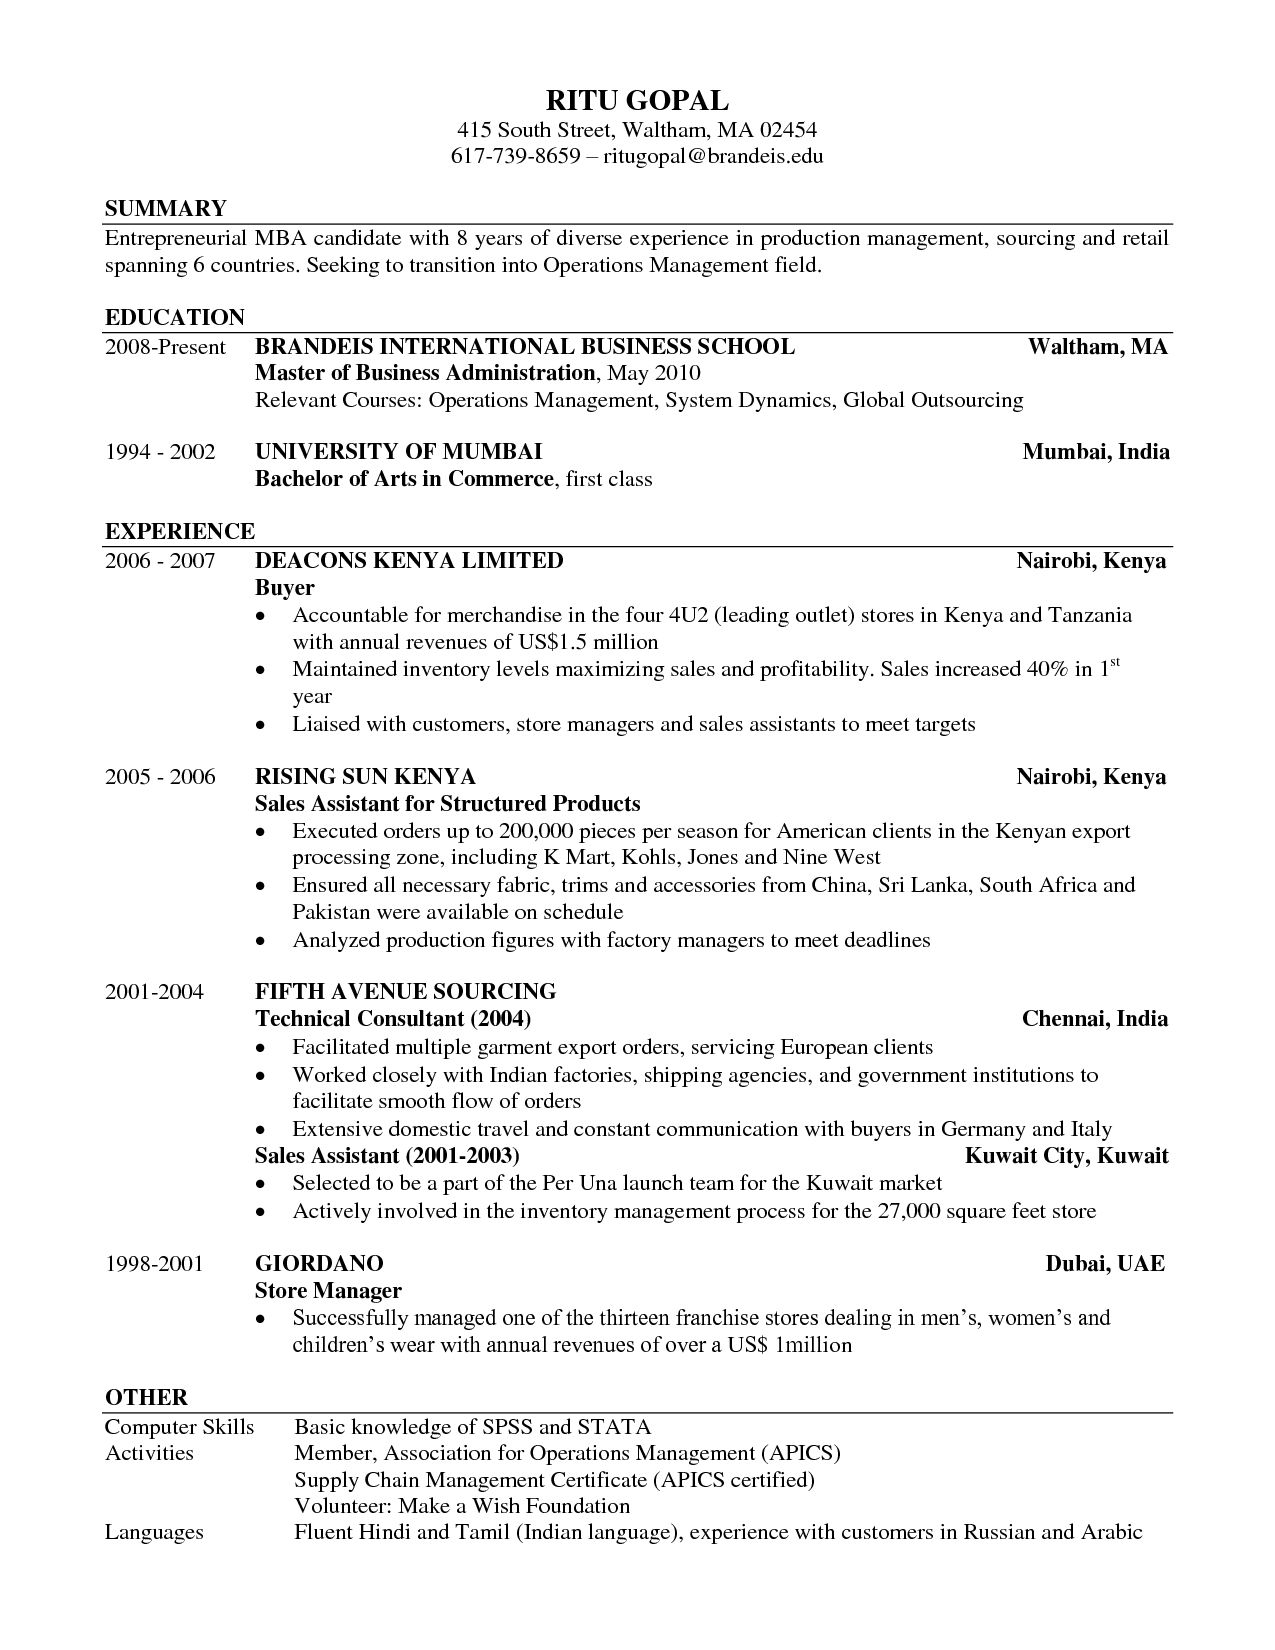 Format For Resumes Stanford Cover Letter Sample Esl Tutor Resume Mba Book Resumes